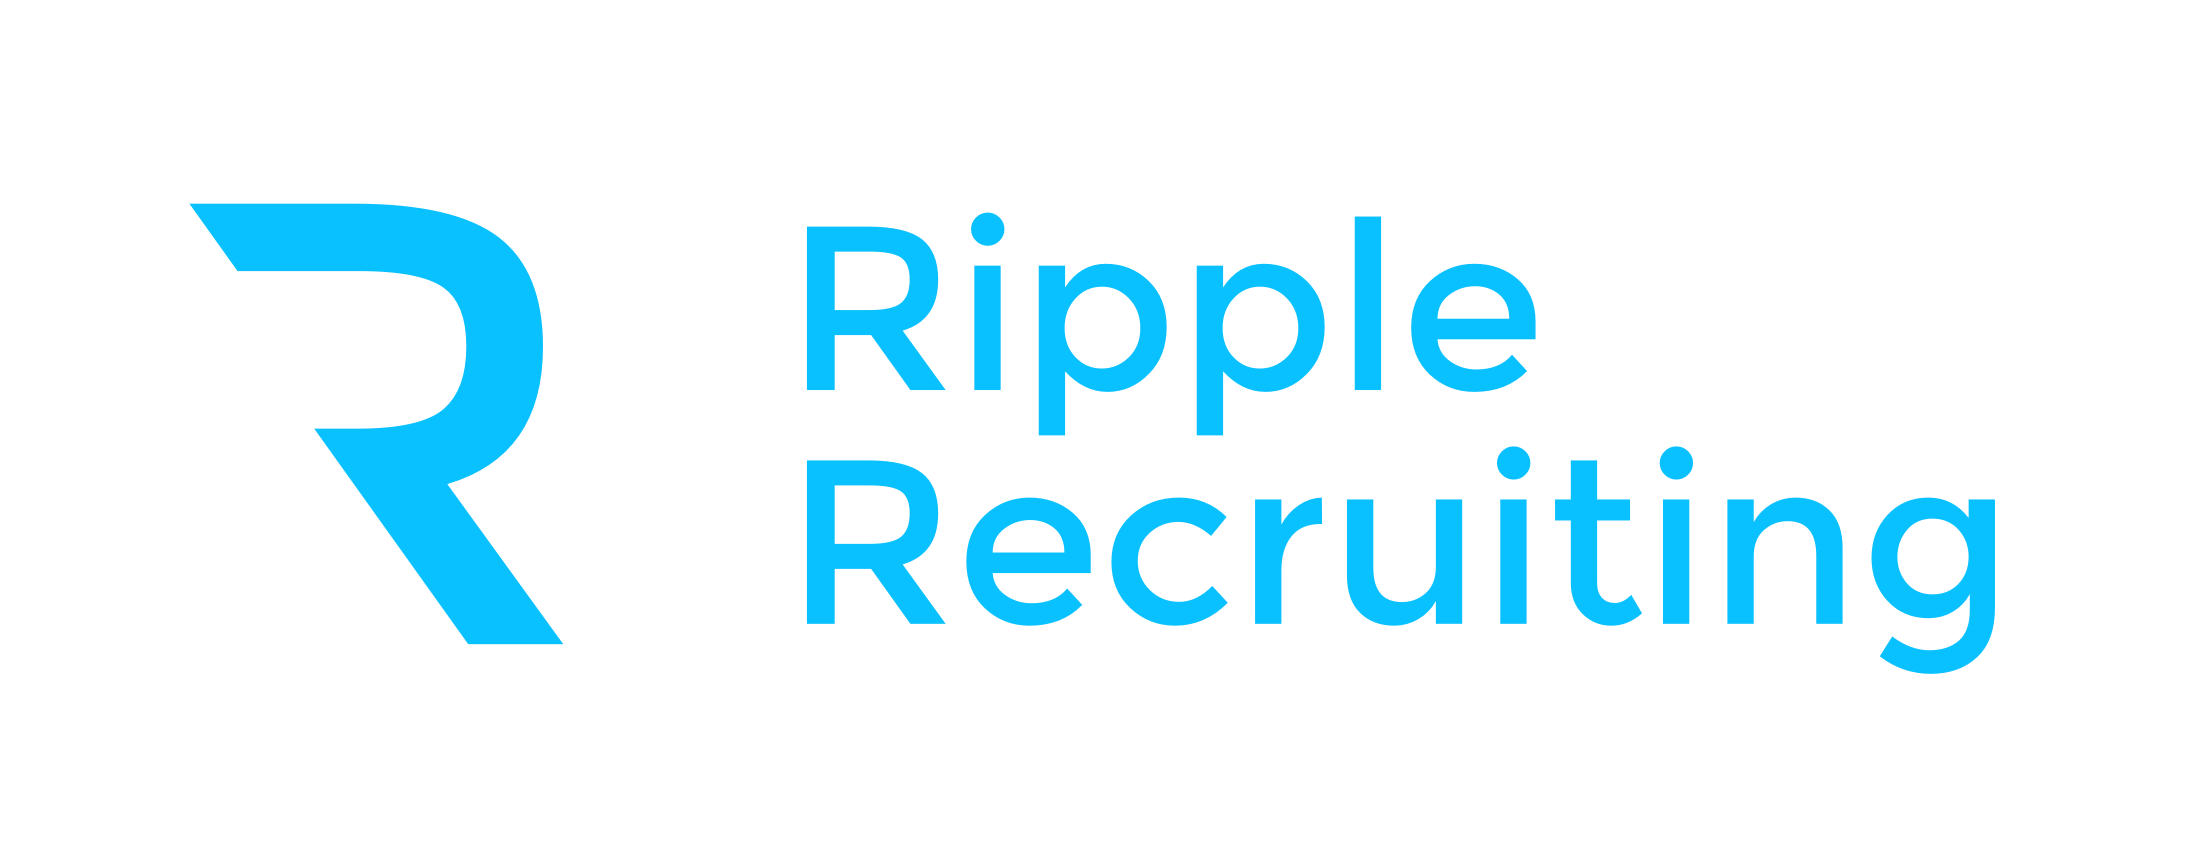 Ripple Recruiting.png